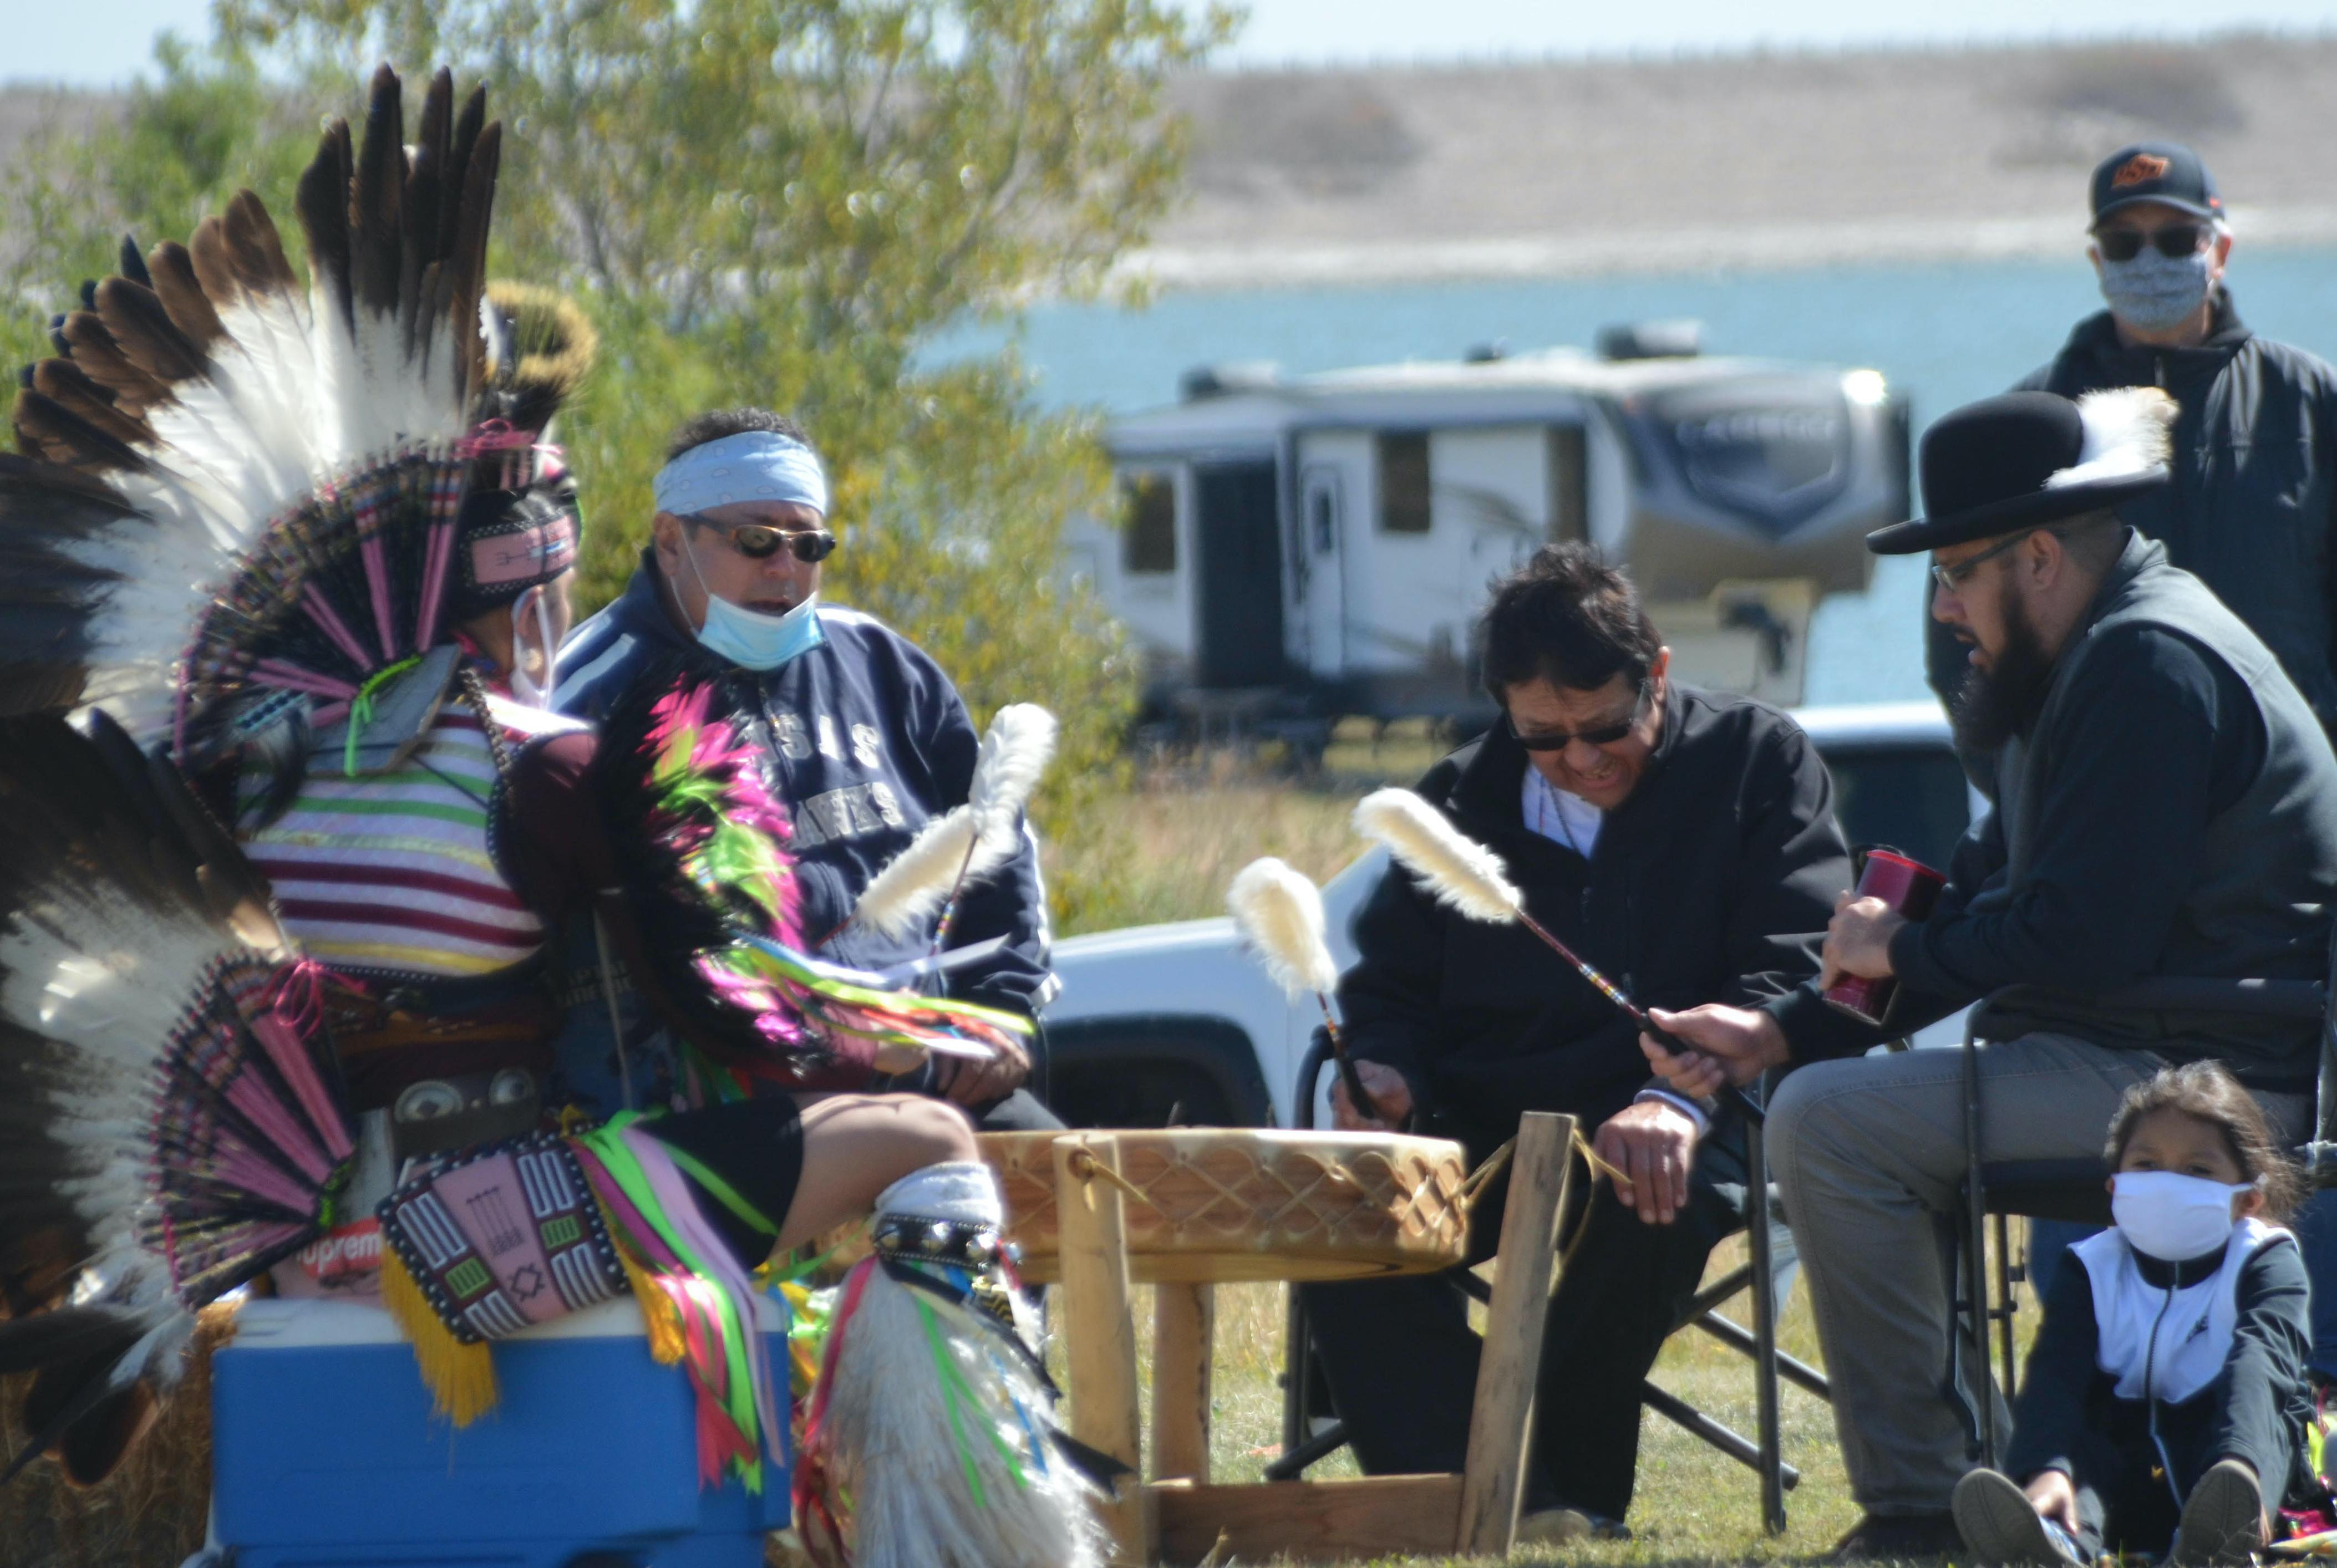 Wakonda Indian Festival: Gather at the Springs Event Image